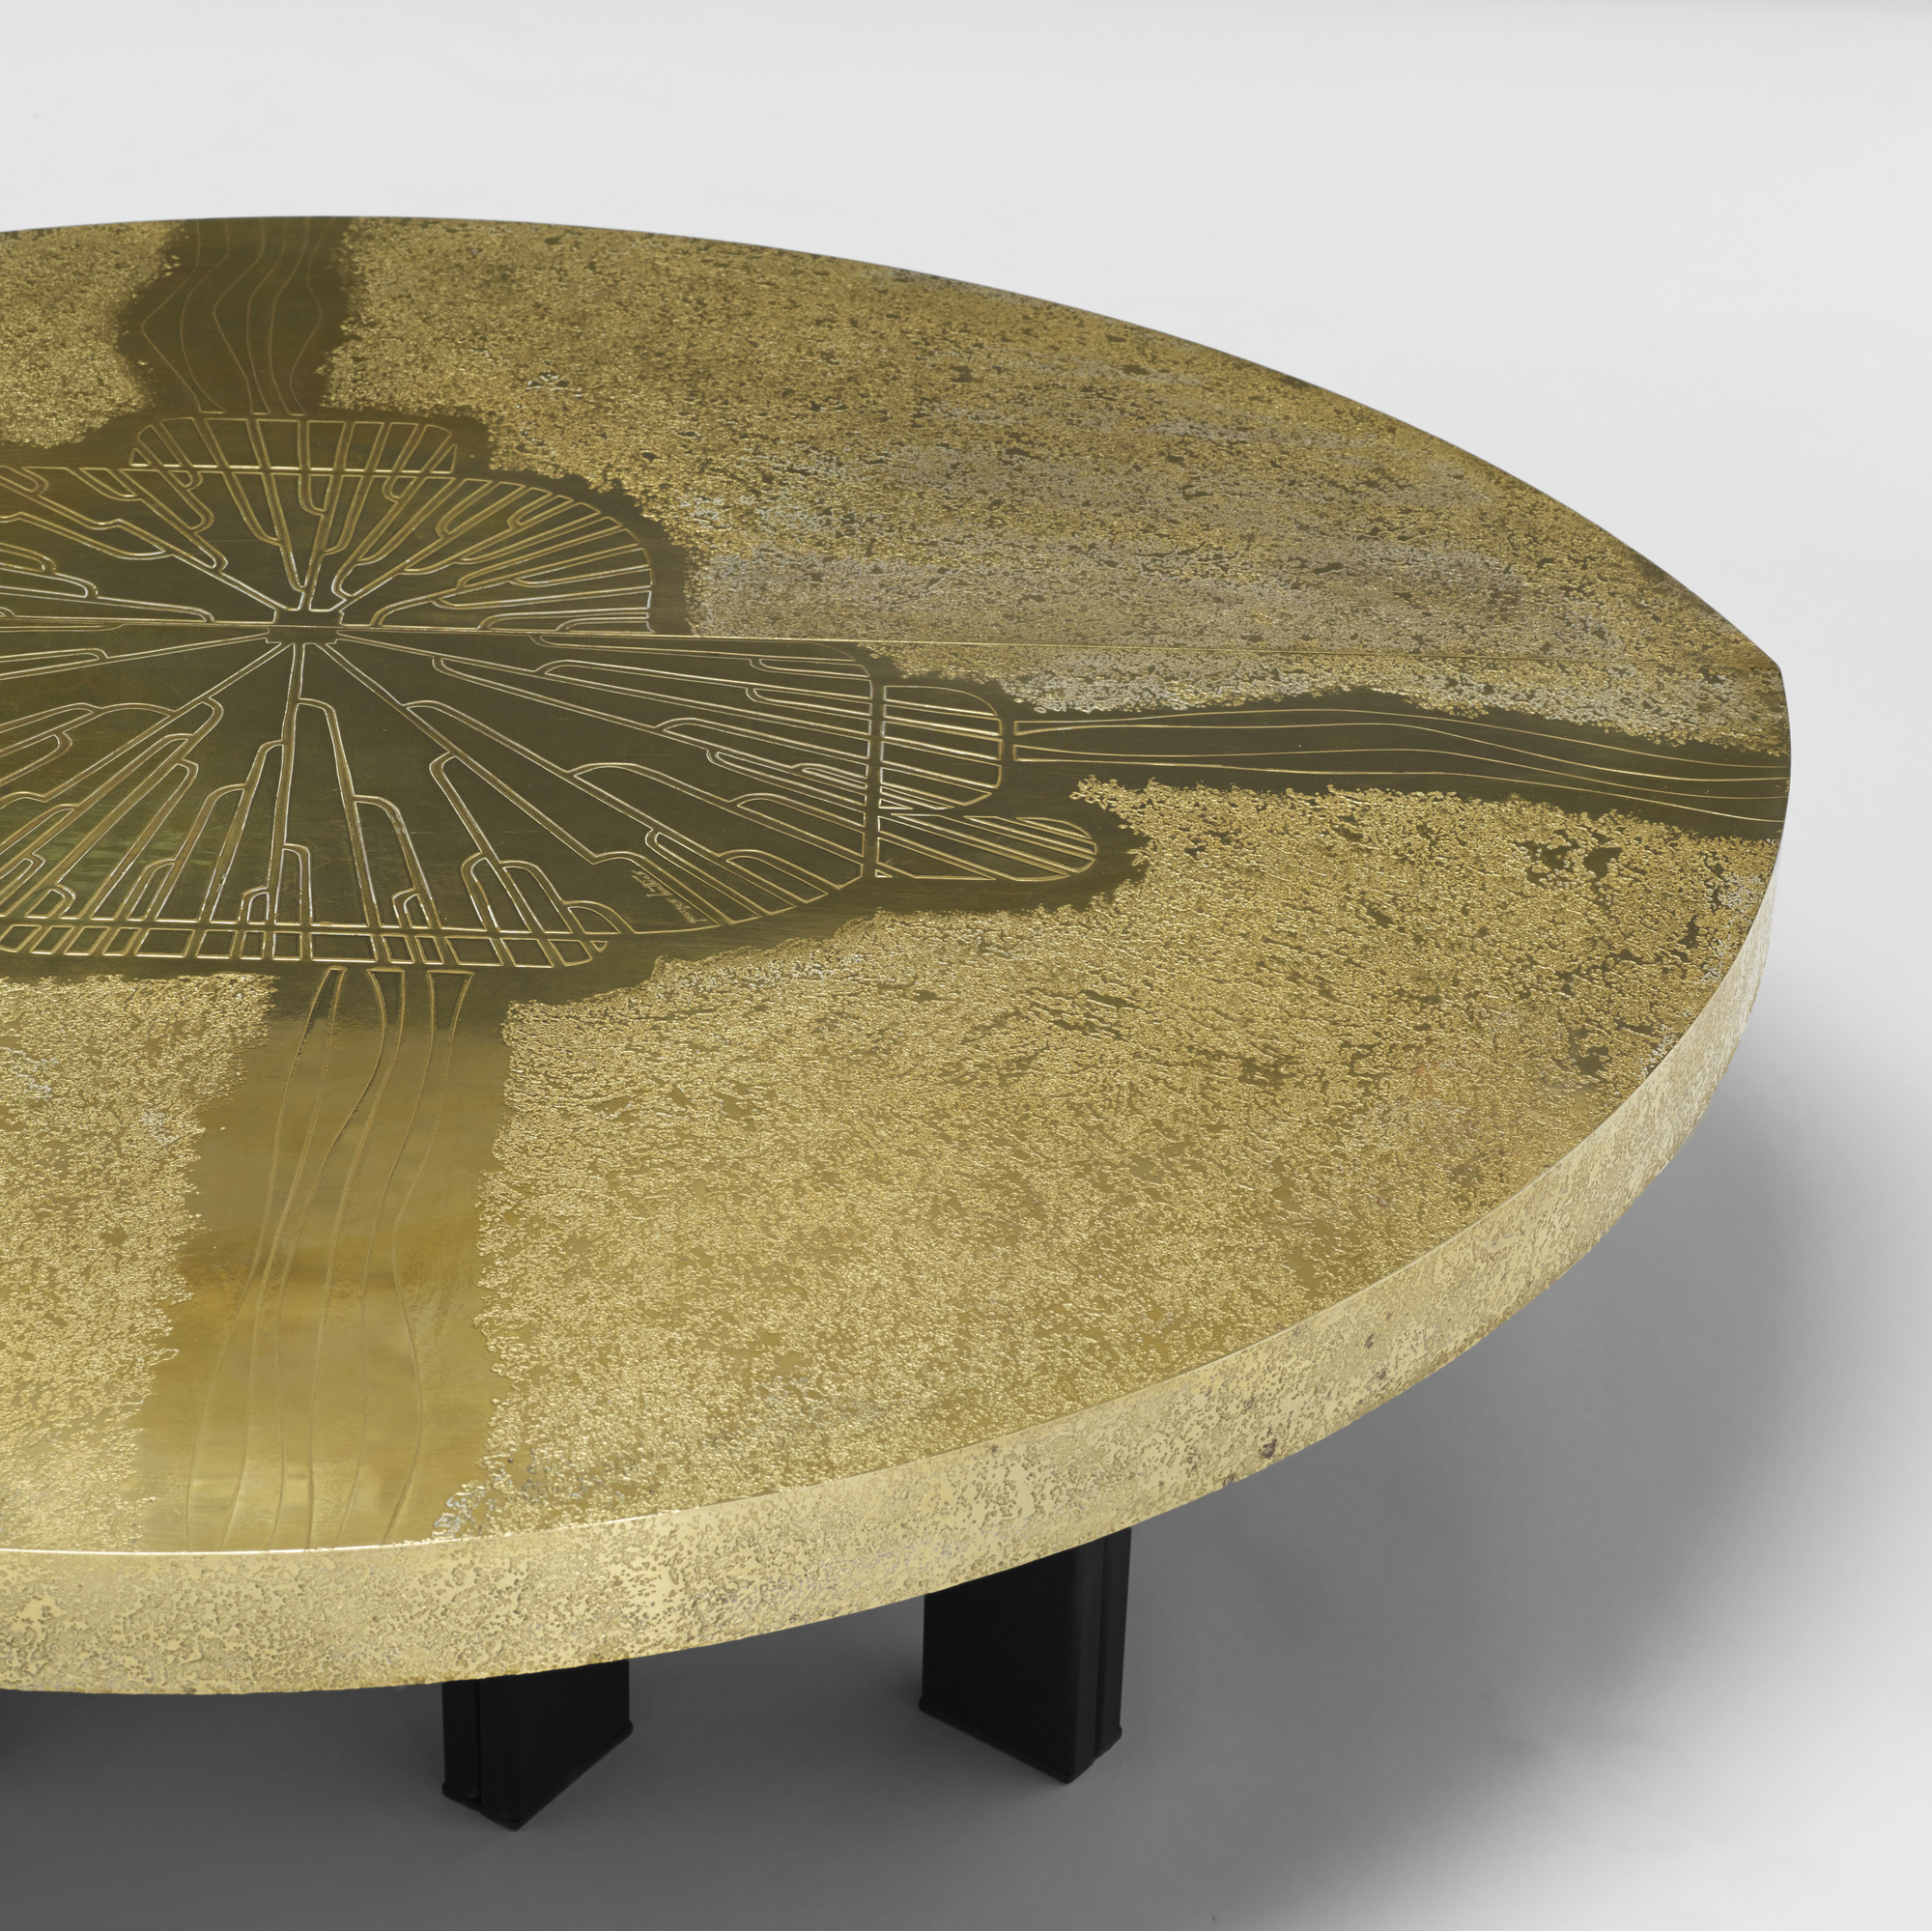 404: Georges Mathias / coffee table (2 of 3)